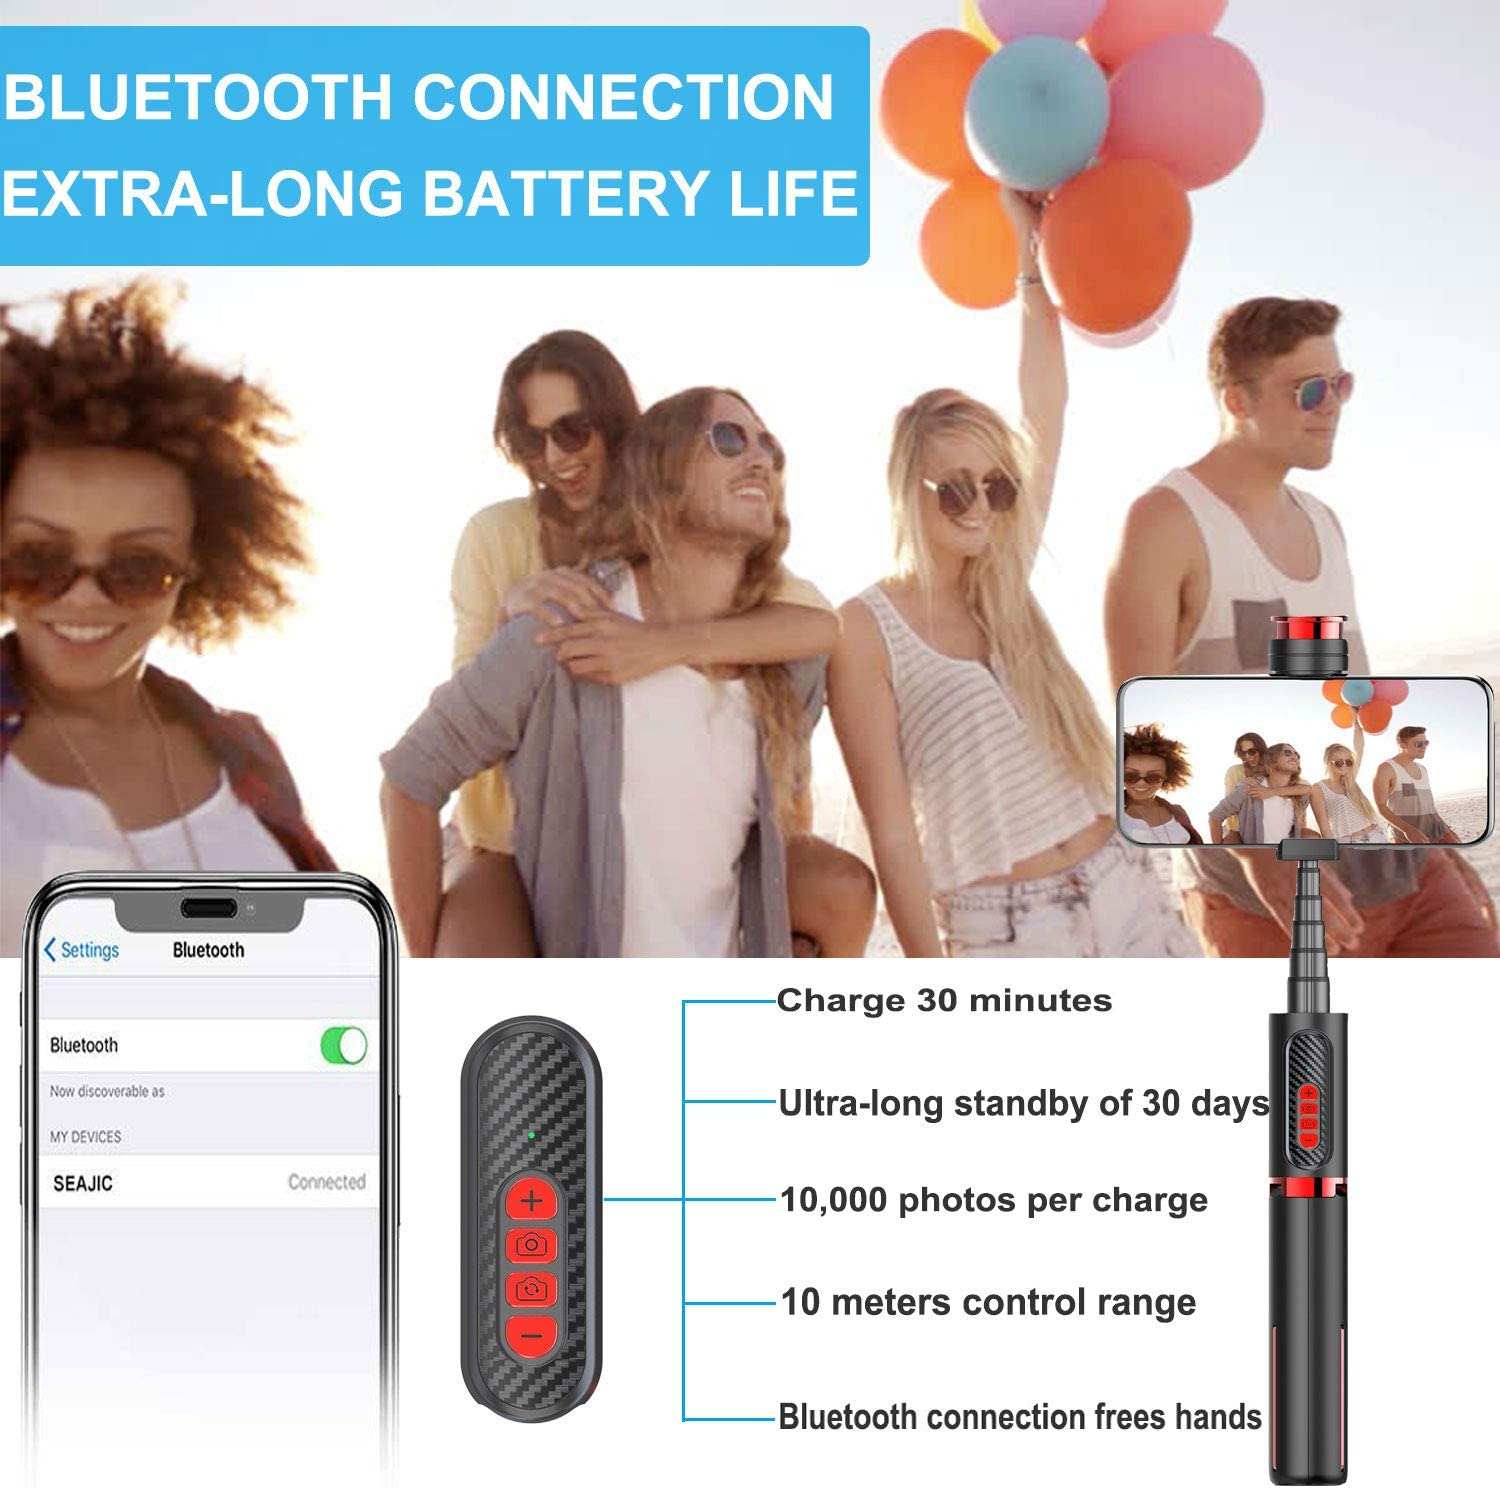 All in 1 Extendable Selfie Stick Tripod with Movable Remote for Focusing and Changing the Lens Mini Selfie Stick for Iphone Babacom Selfie Stick Bluetooth Samsung,Huawei and More